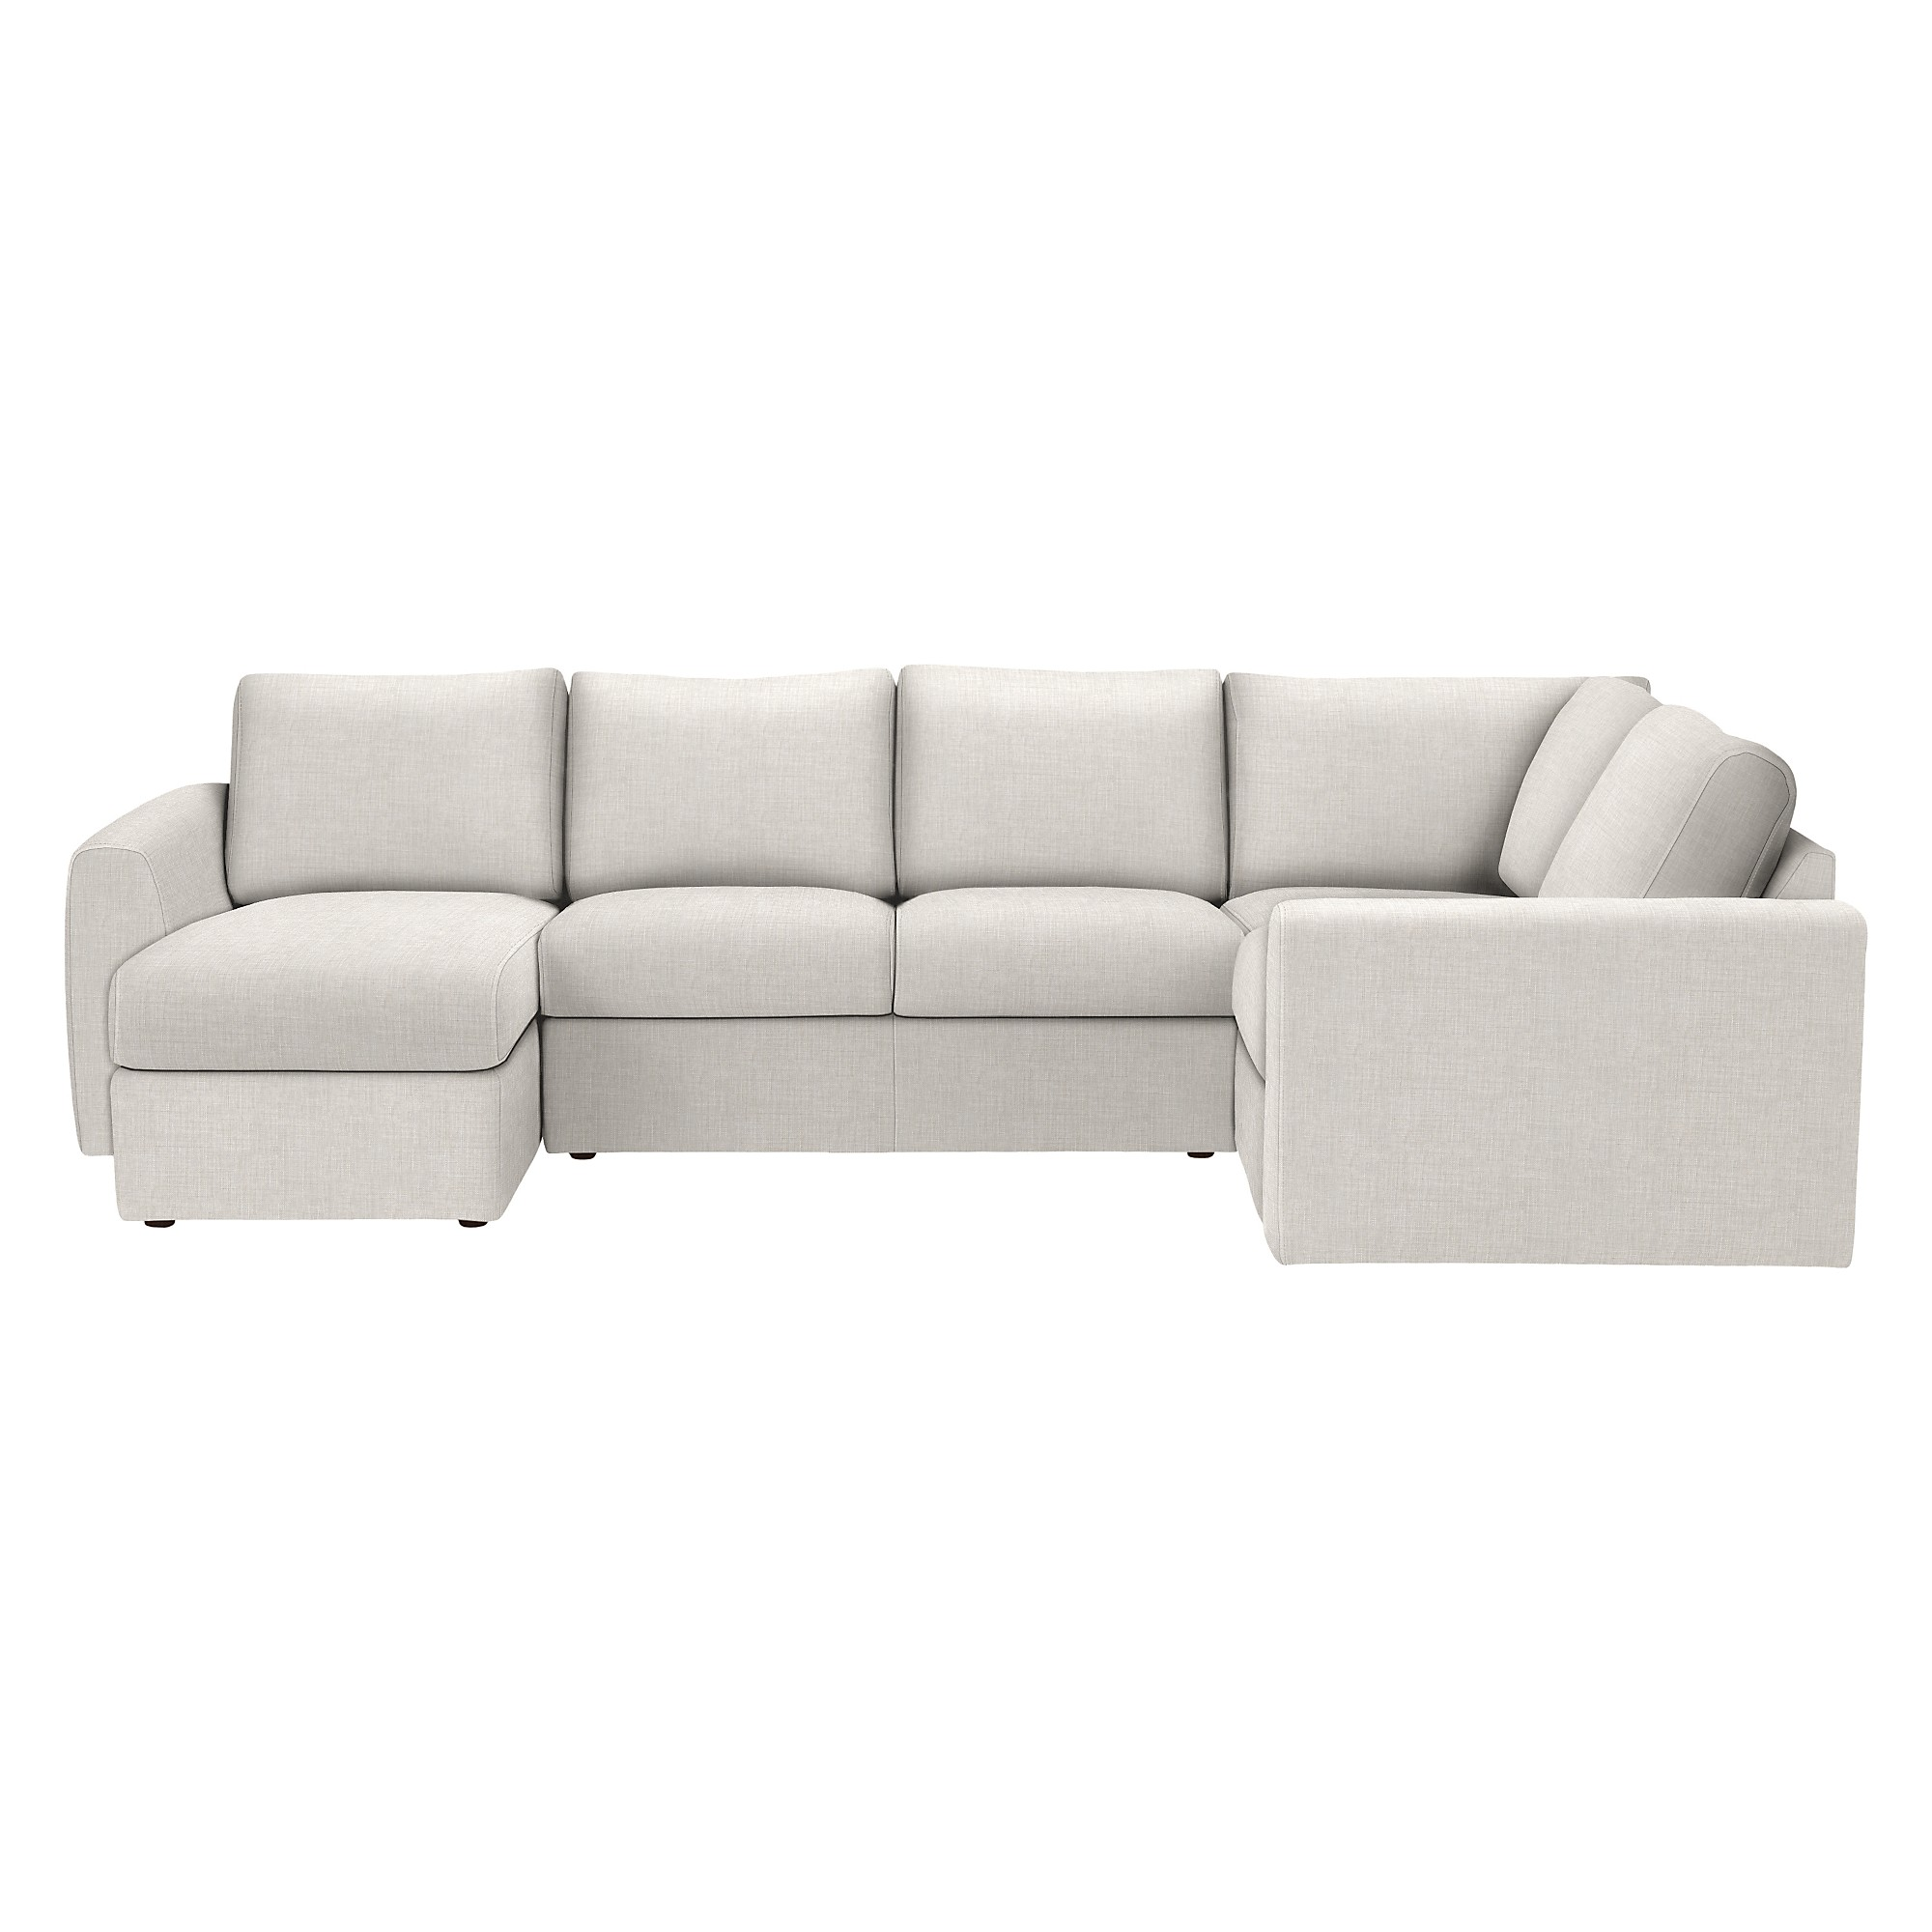 house of fraser corner sofa natalia bed by john lewis finlay ii chaise end